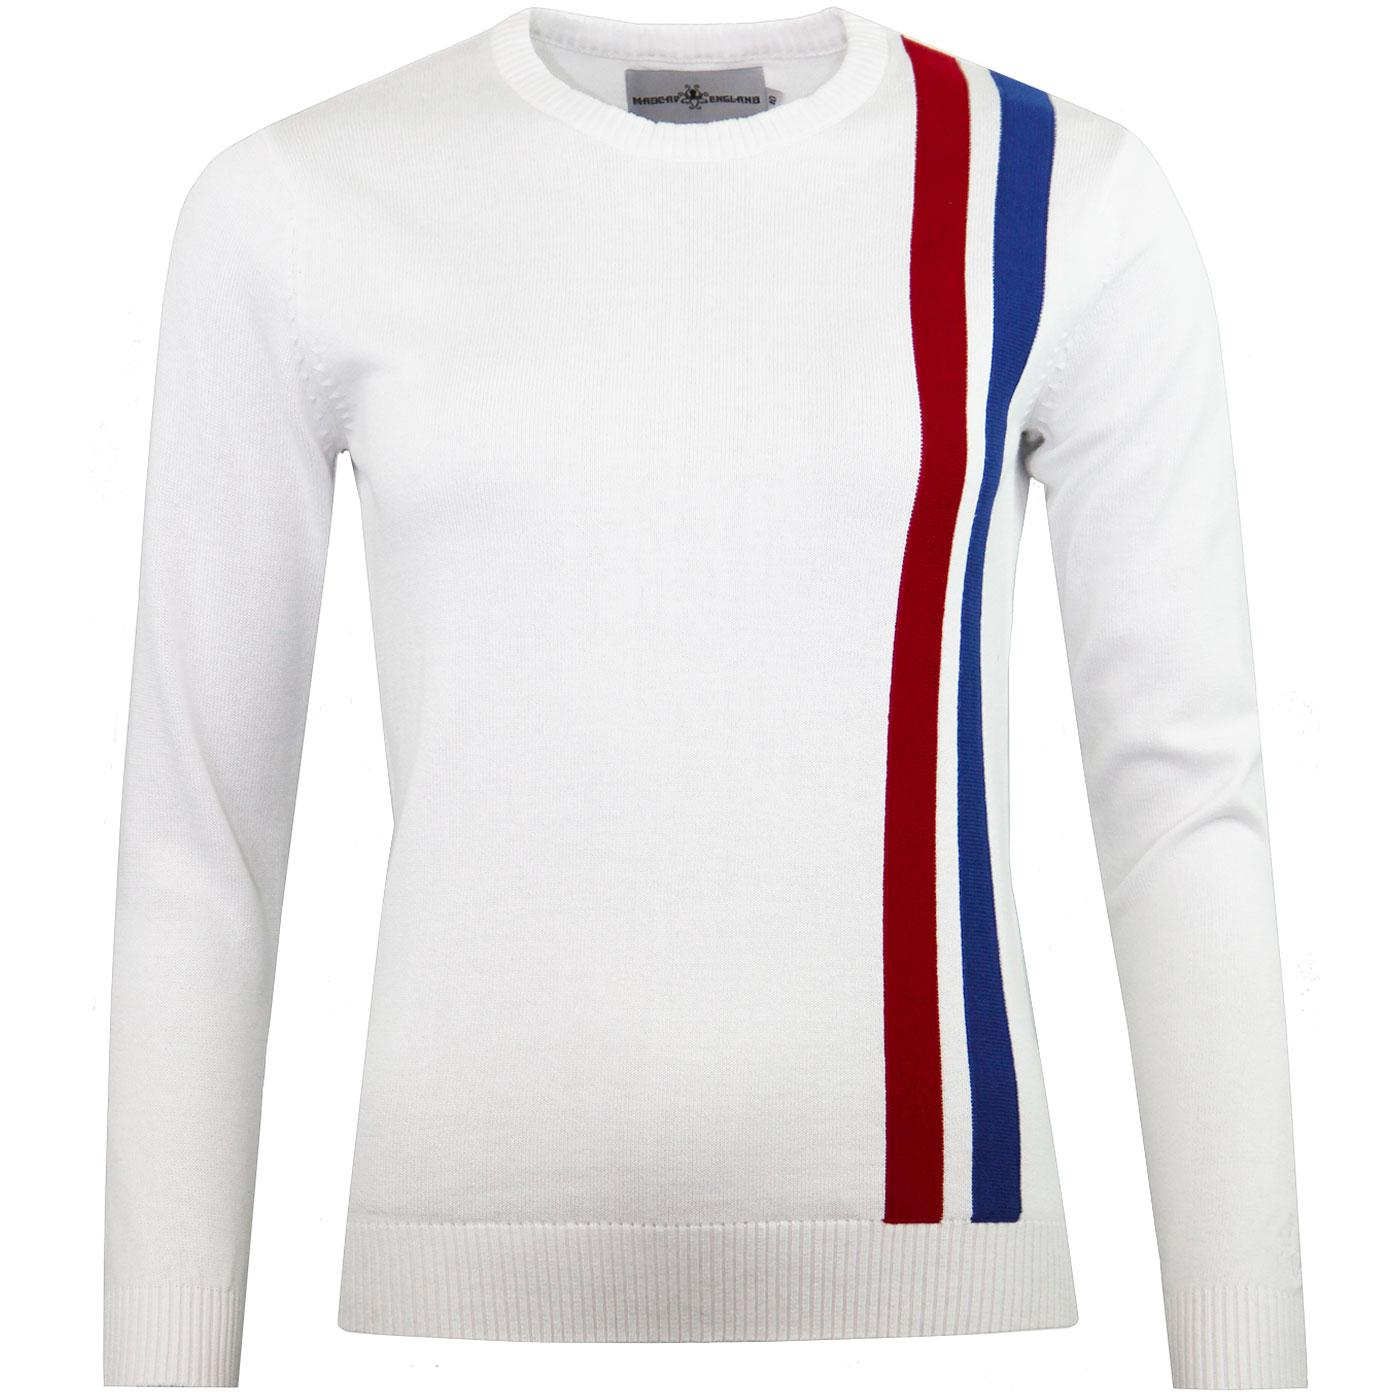 Madcap England Women's Retro Mod Racing Jumper in White